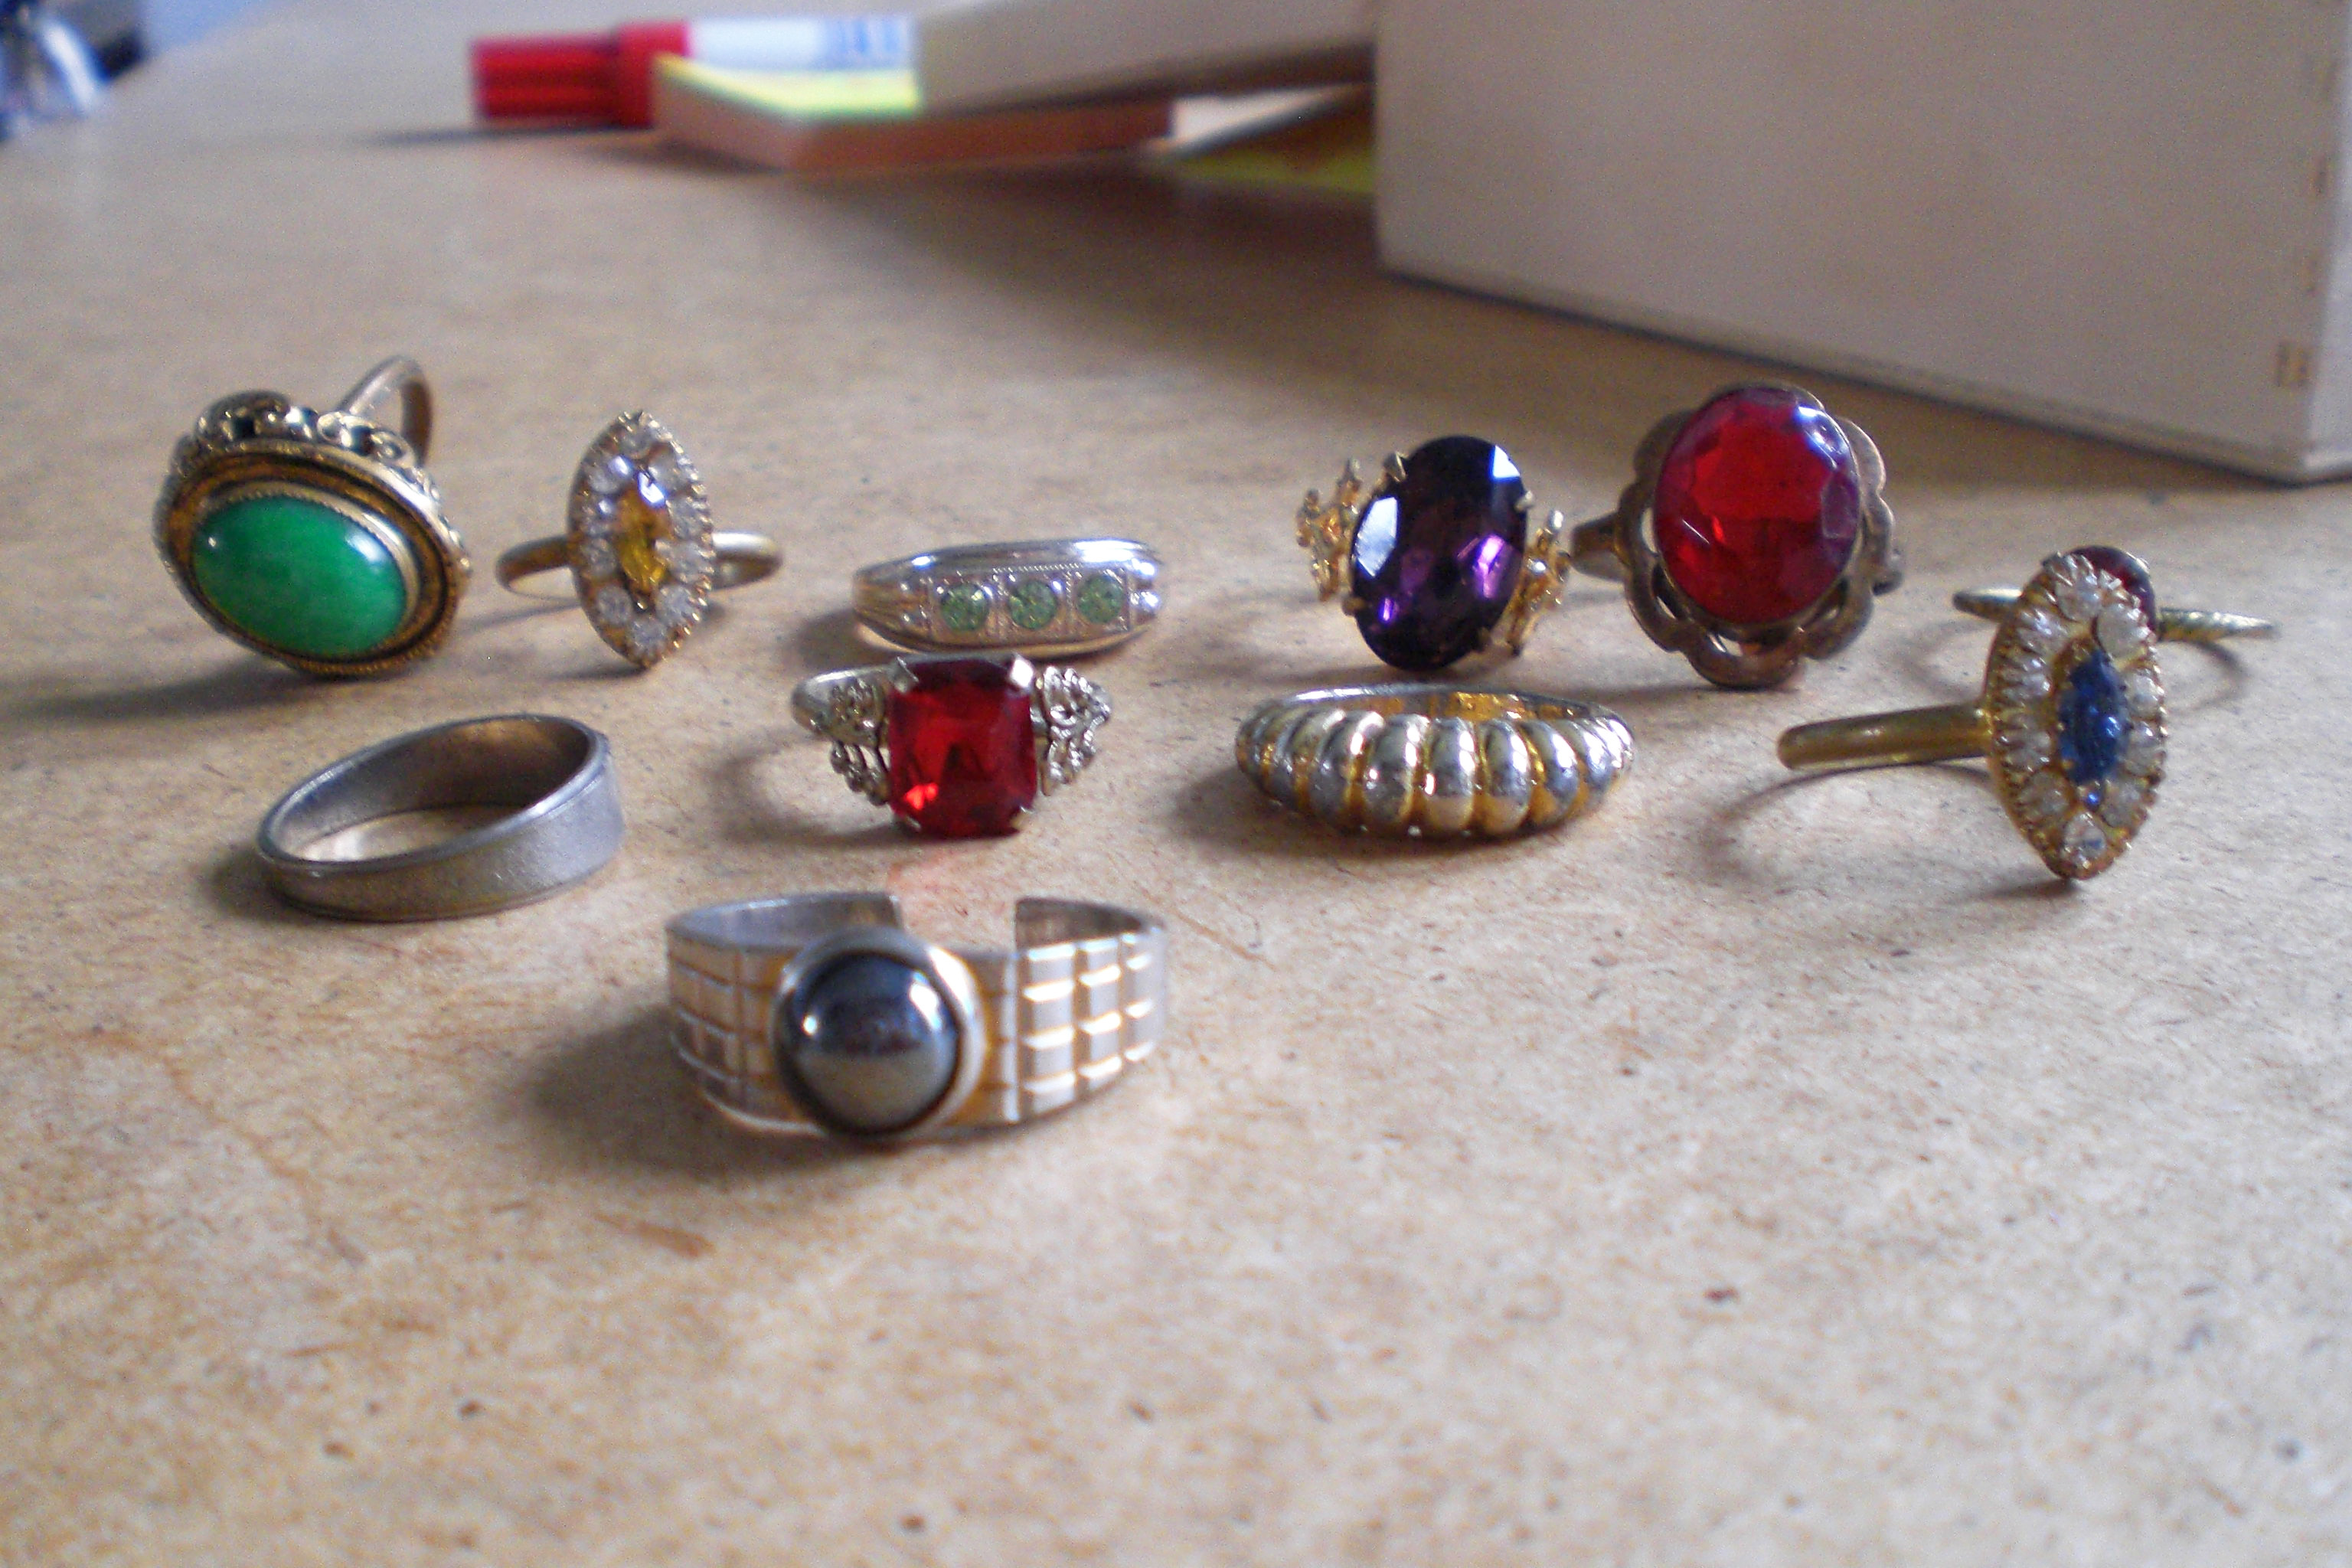 Which ring will fit best?